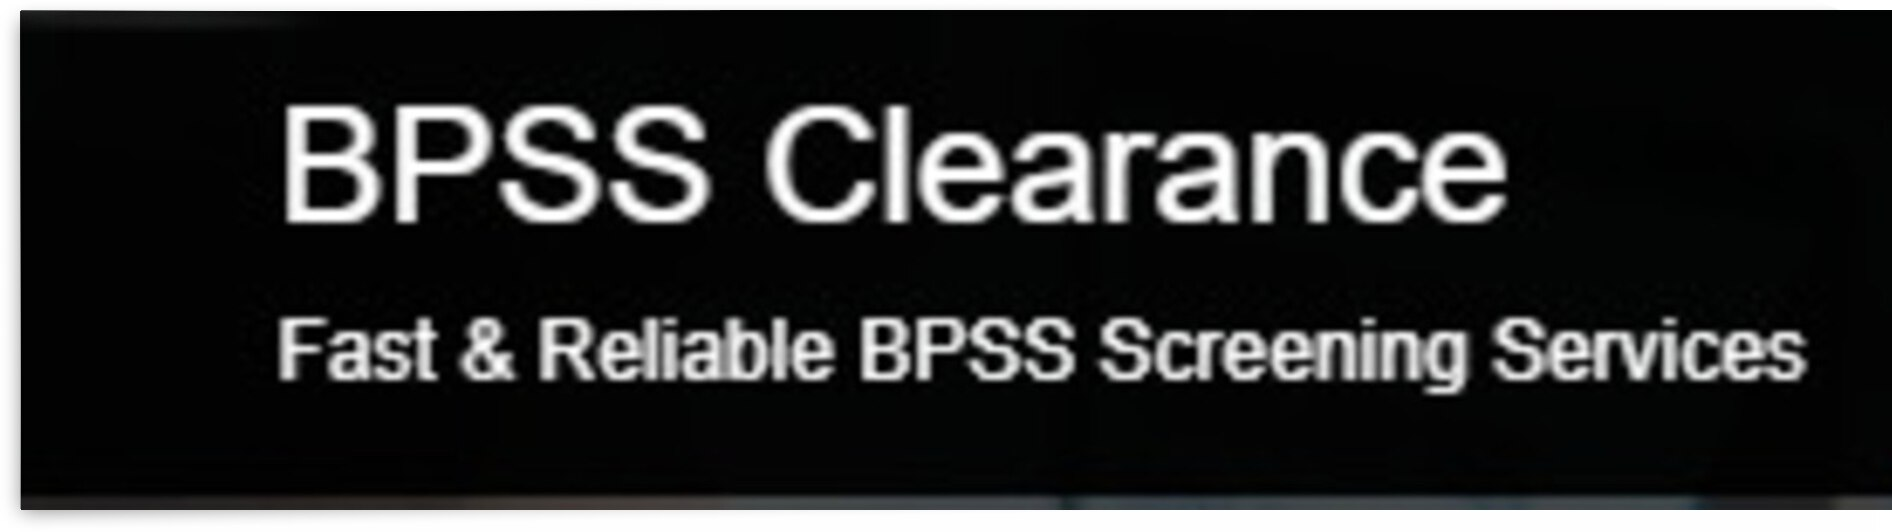 bpss logo by bpssclearance